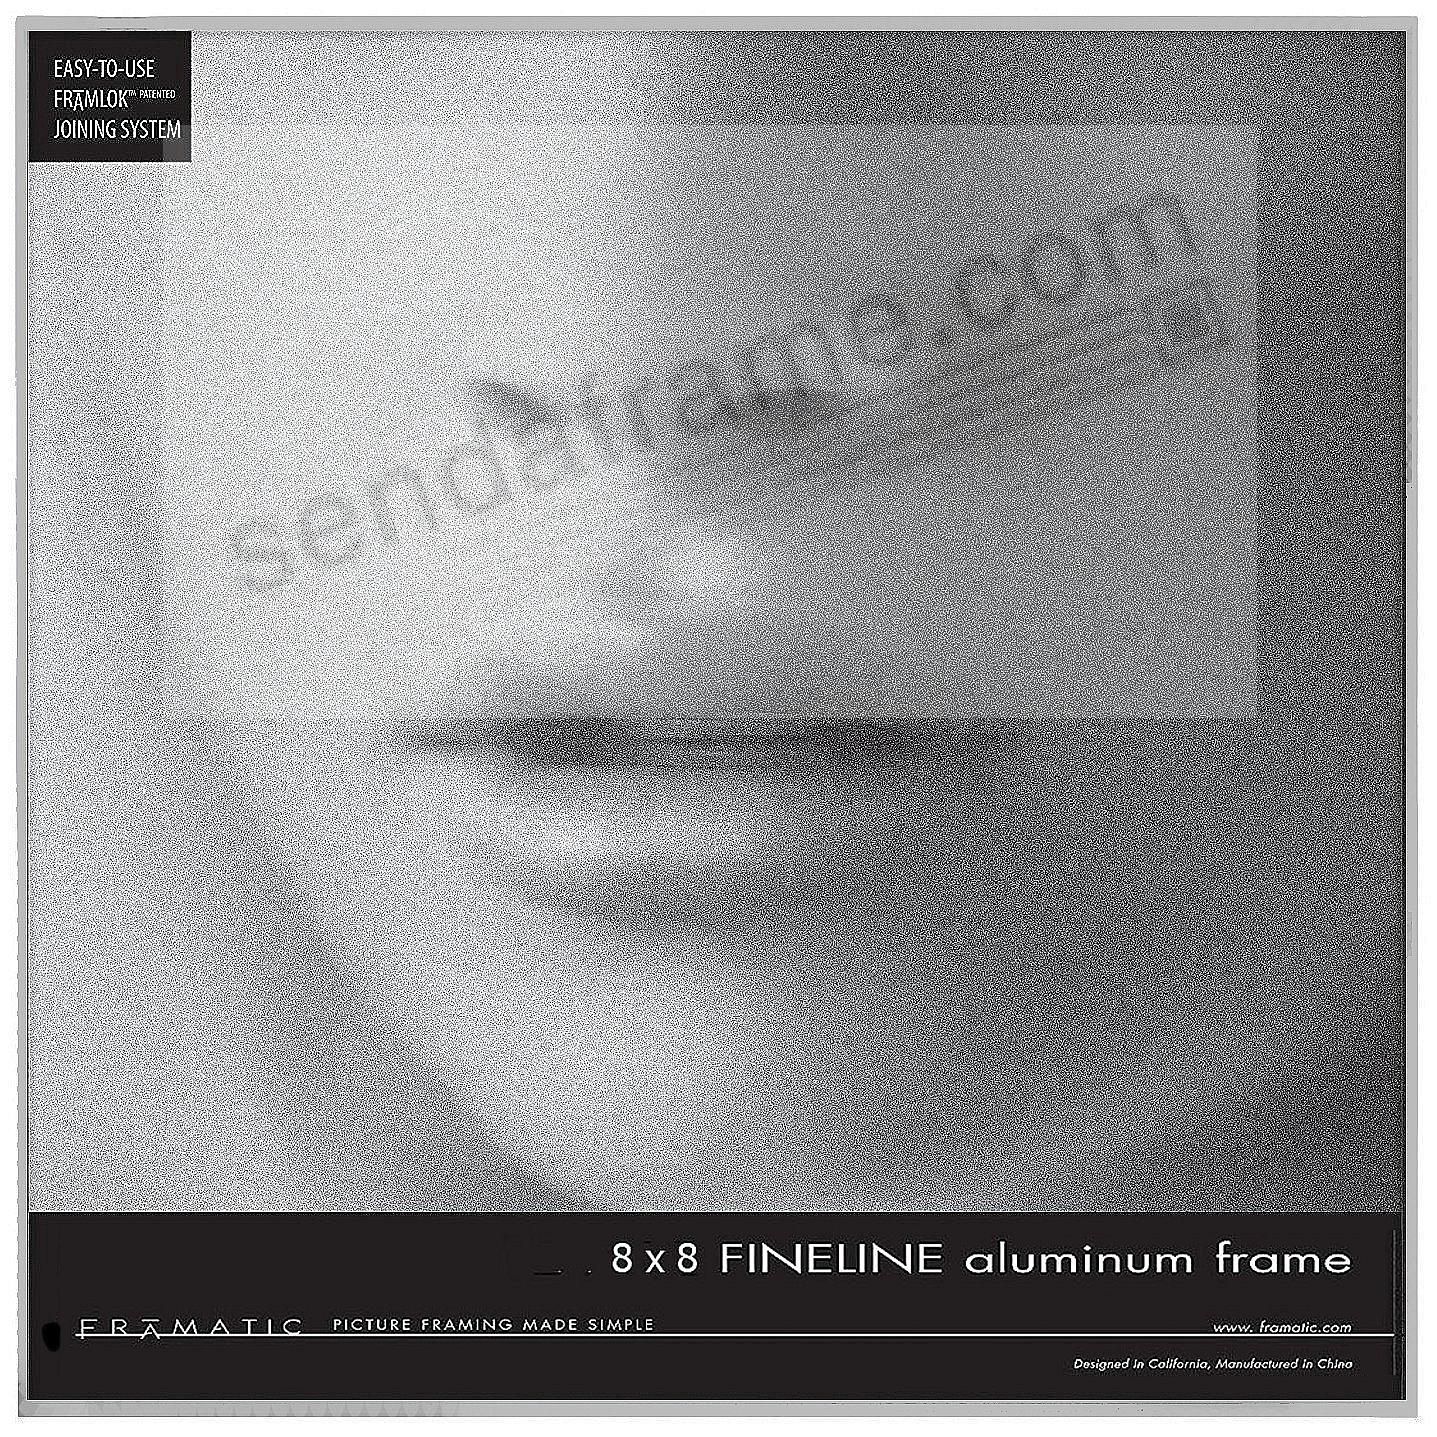 FINELINE Silver Aluminum 8x8 by Framatic®